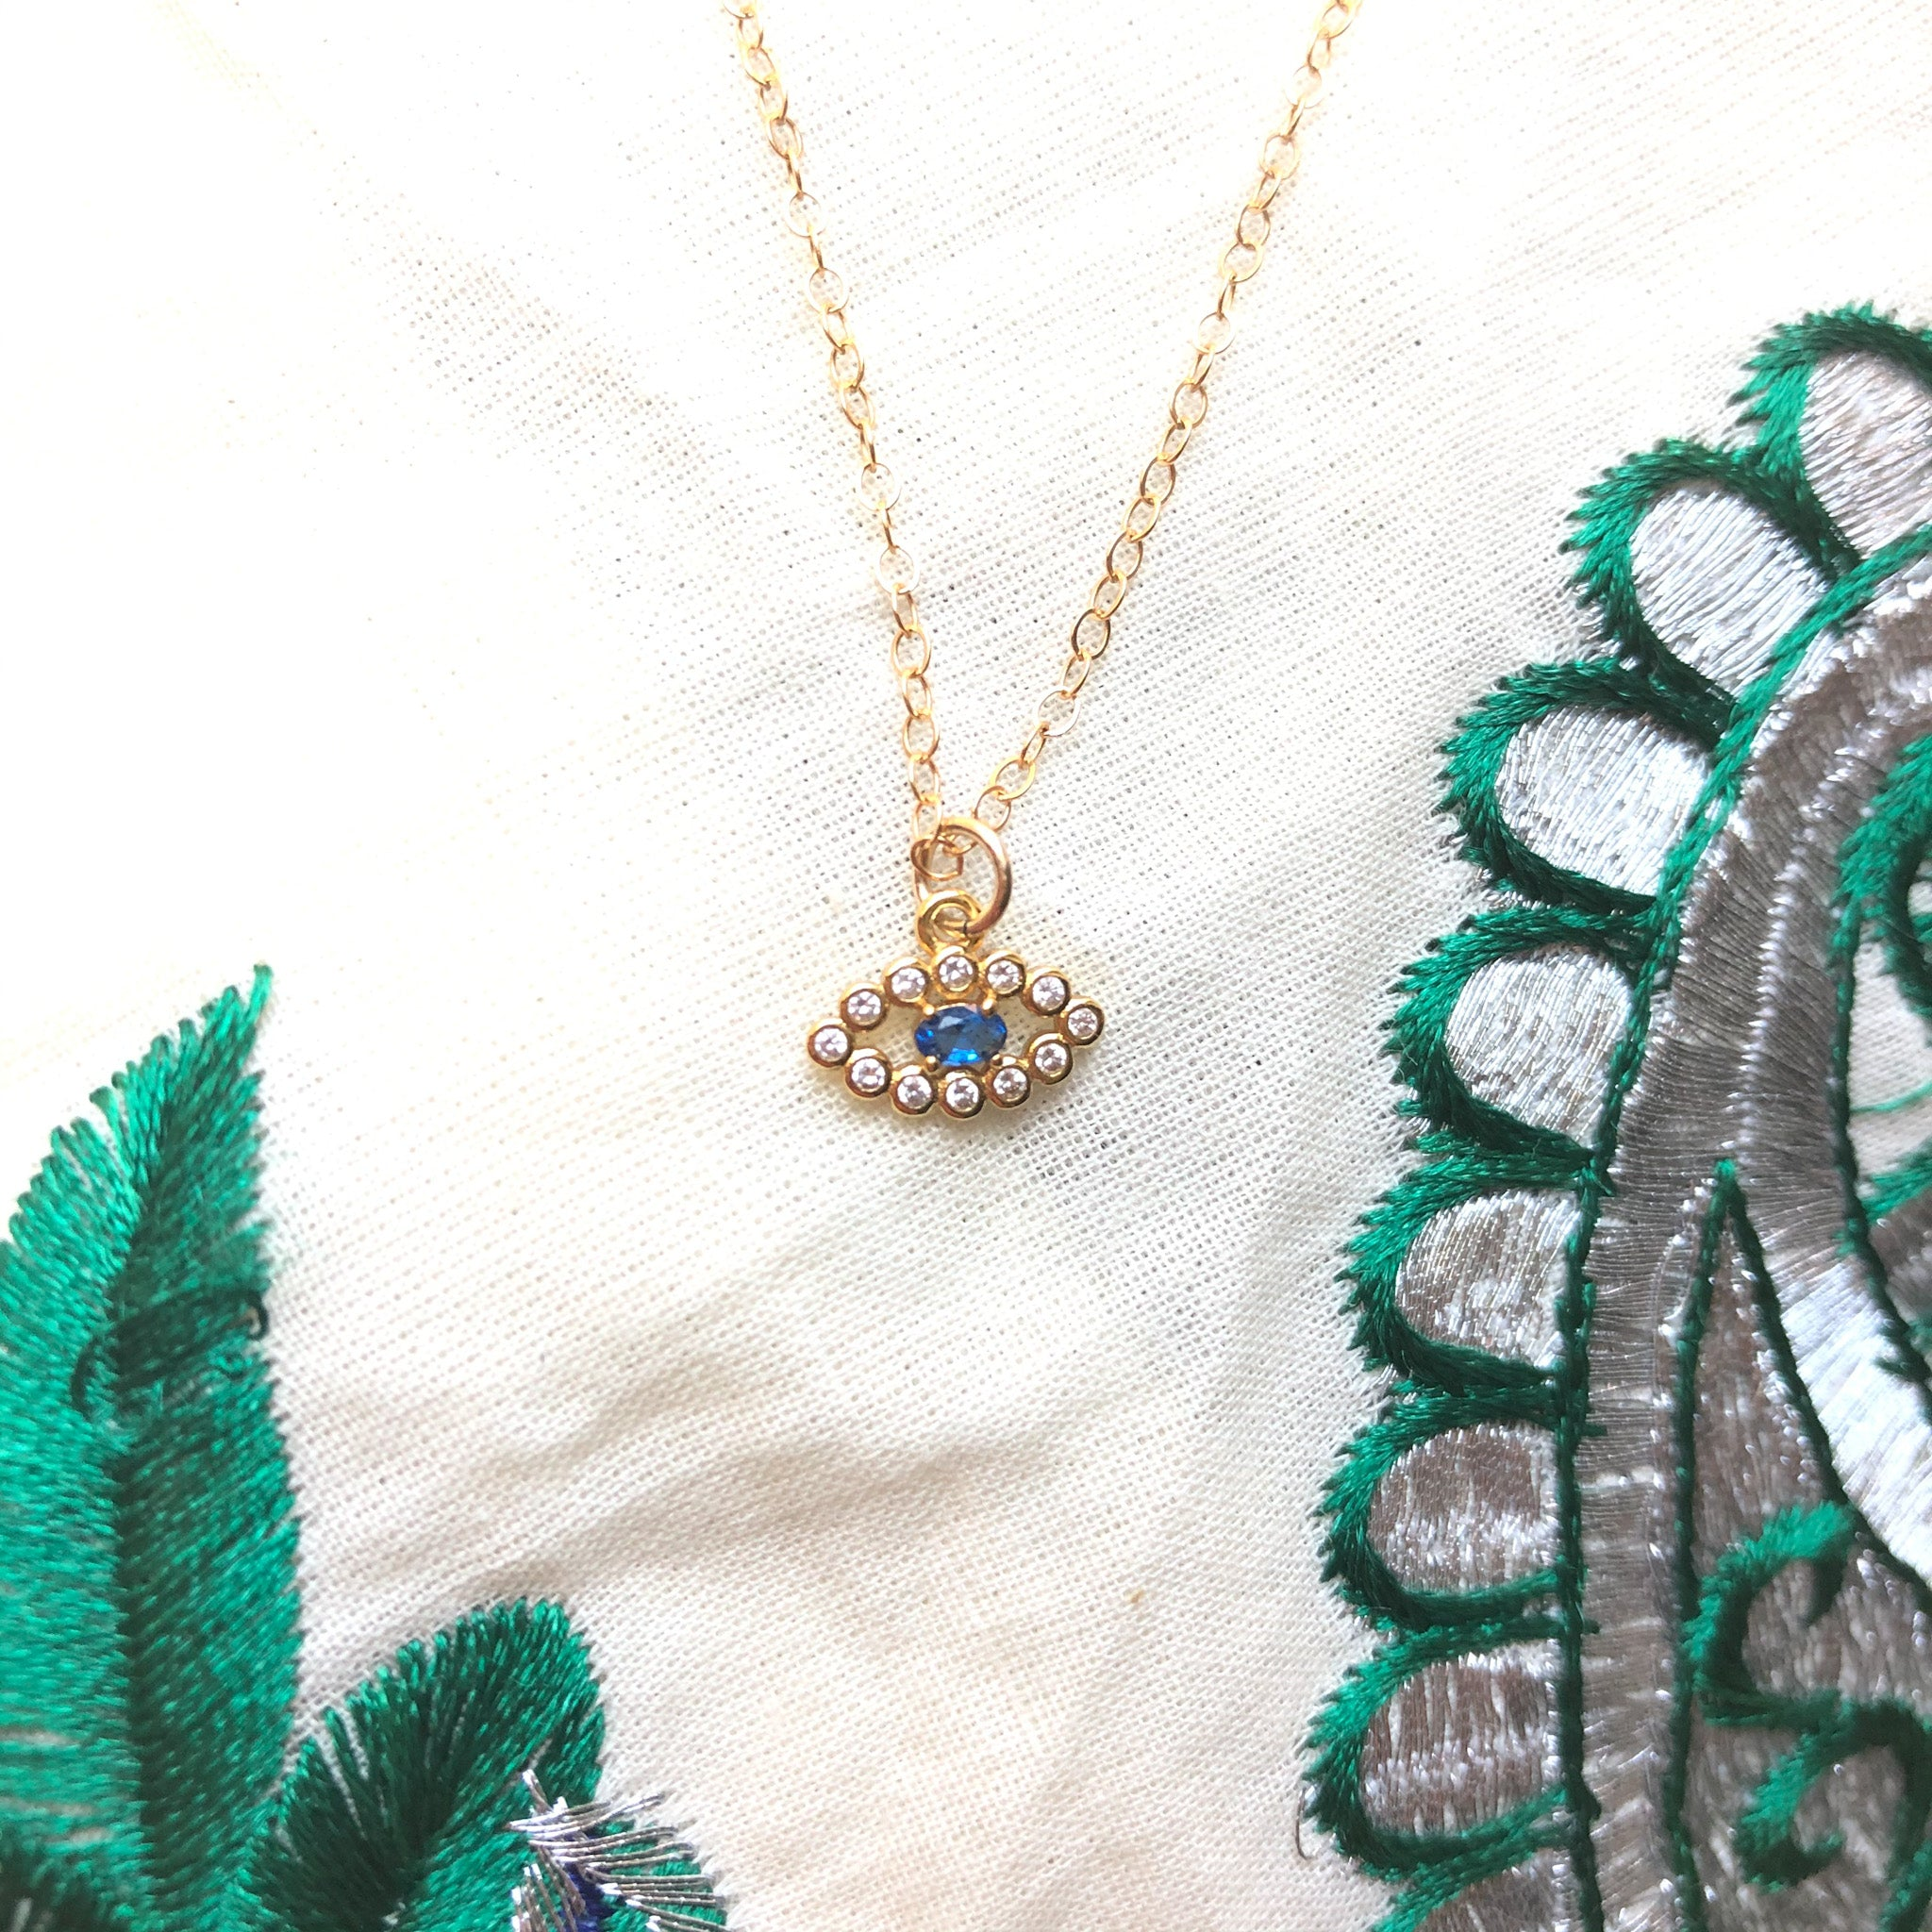 Dhara Necklace - Dainty Evil Eye